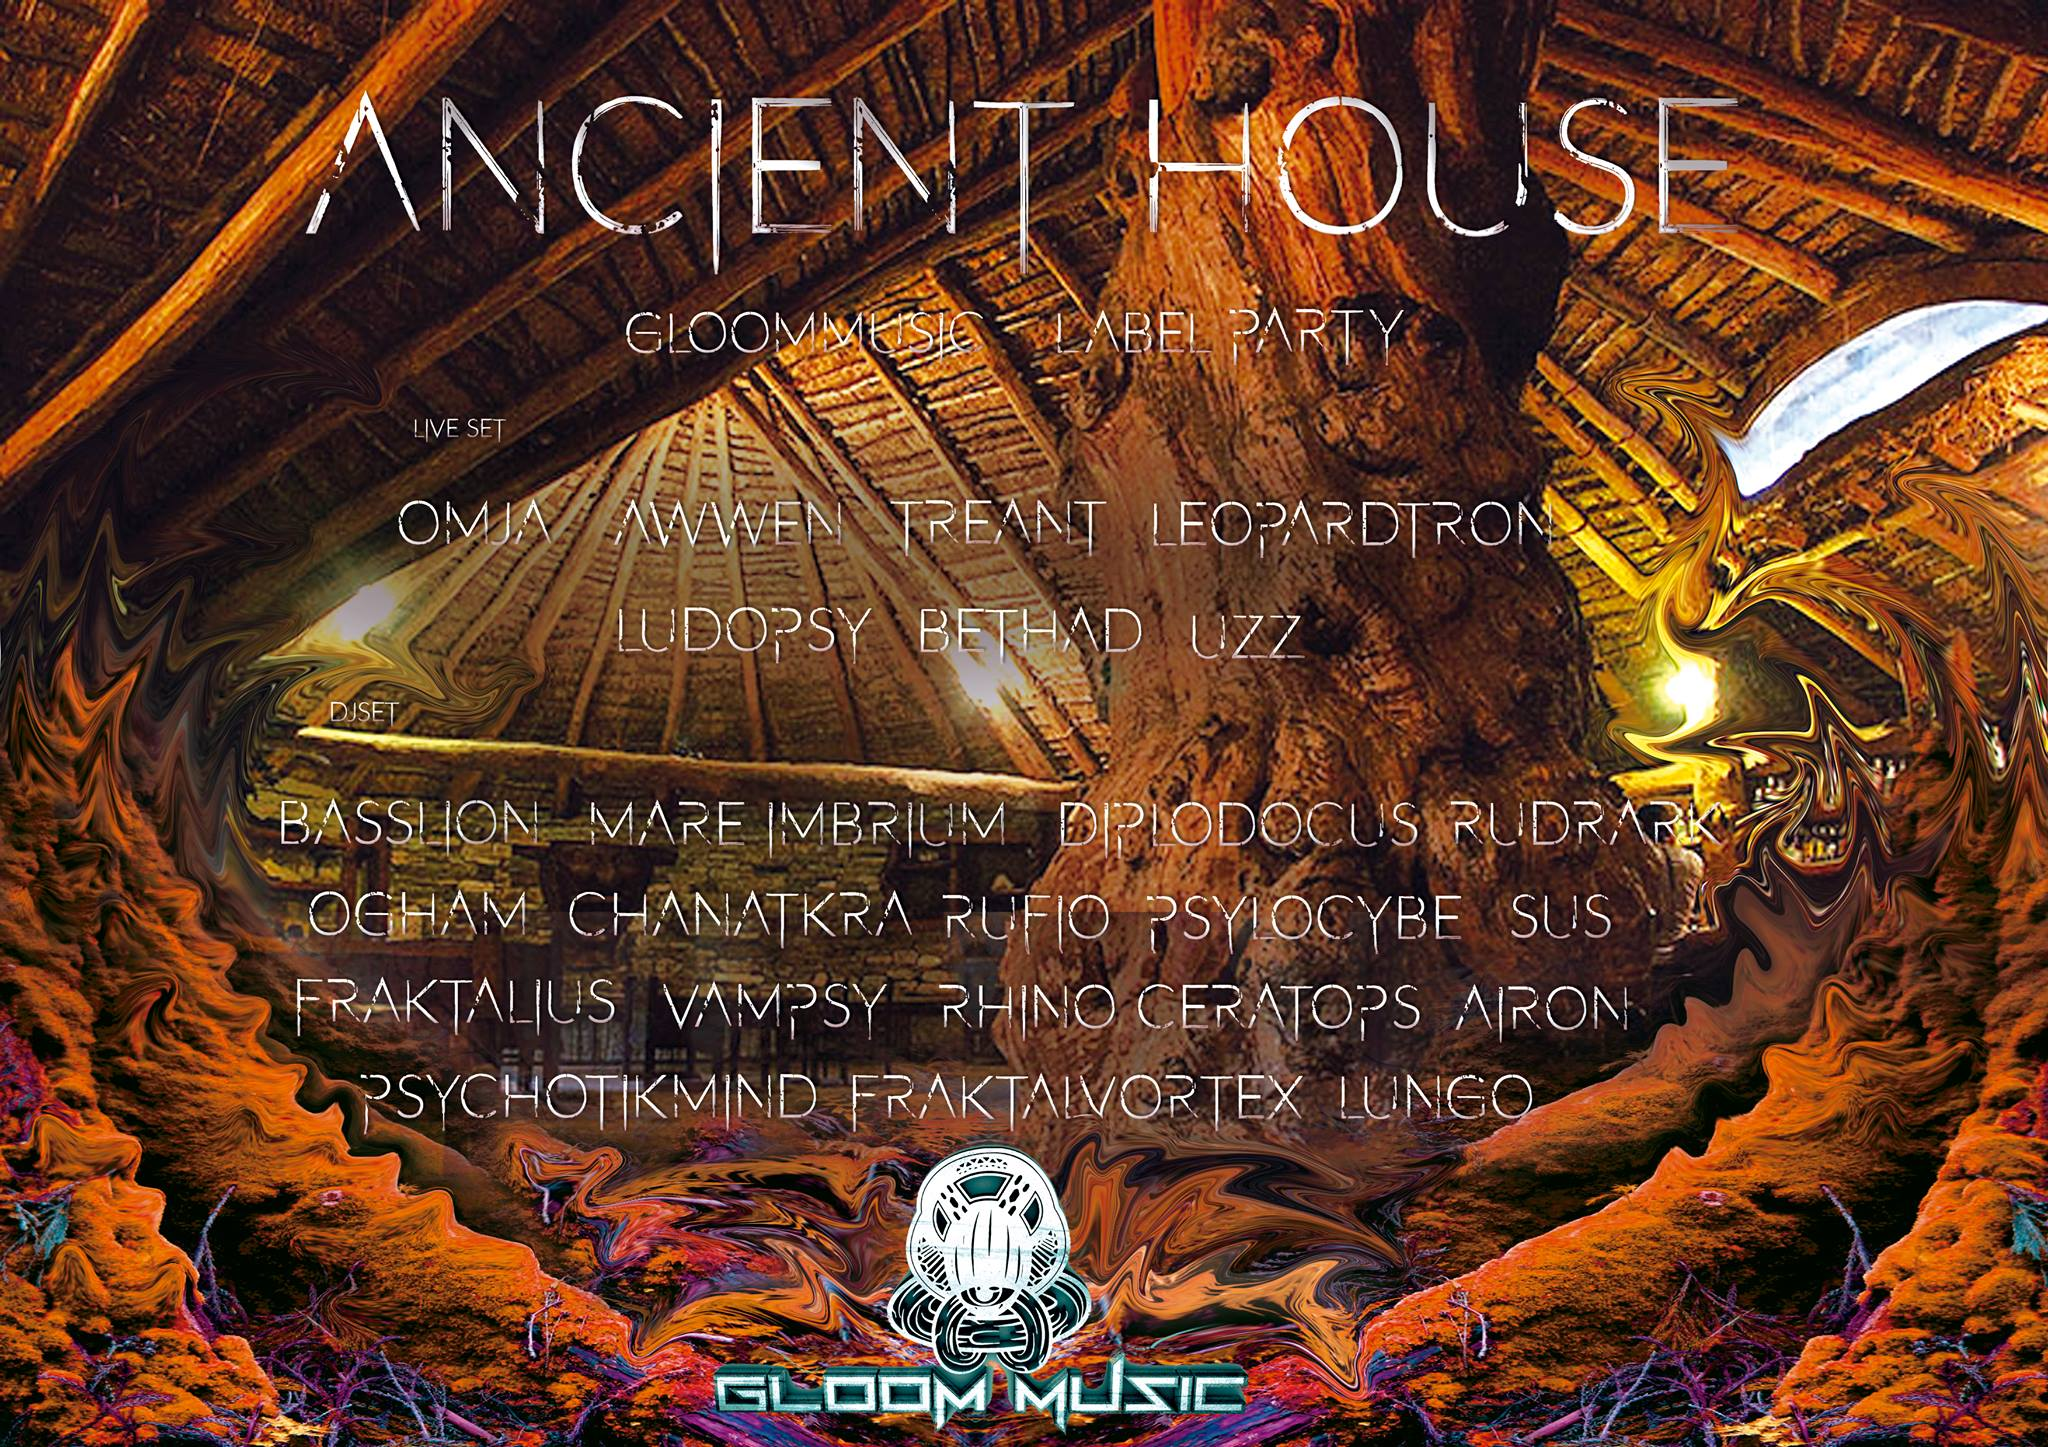 GloOm Music Label Party; The Ancient House III 1